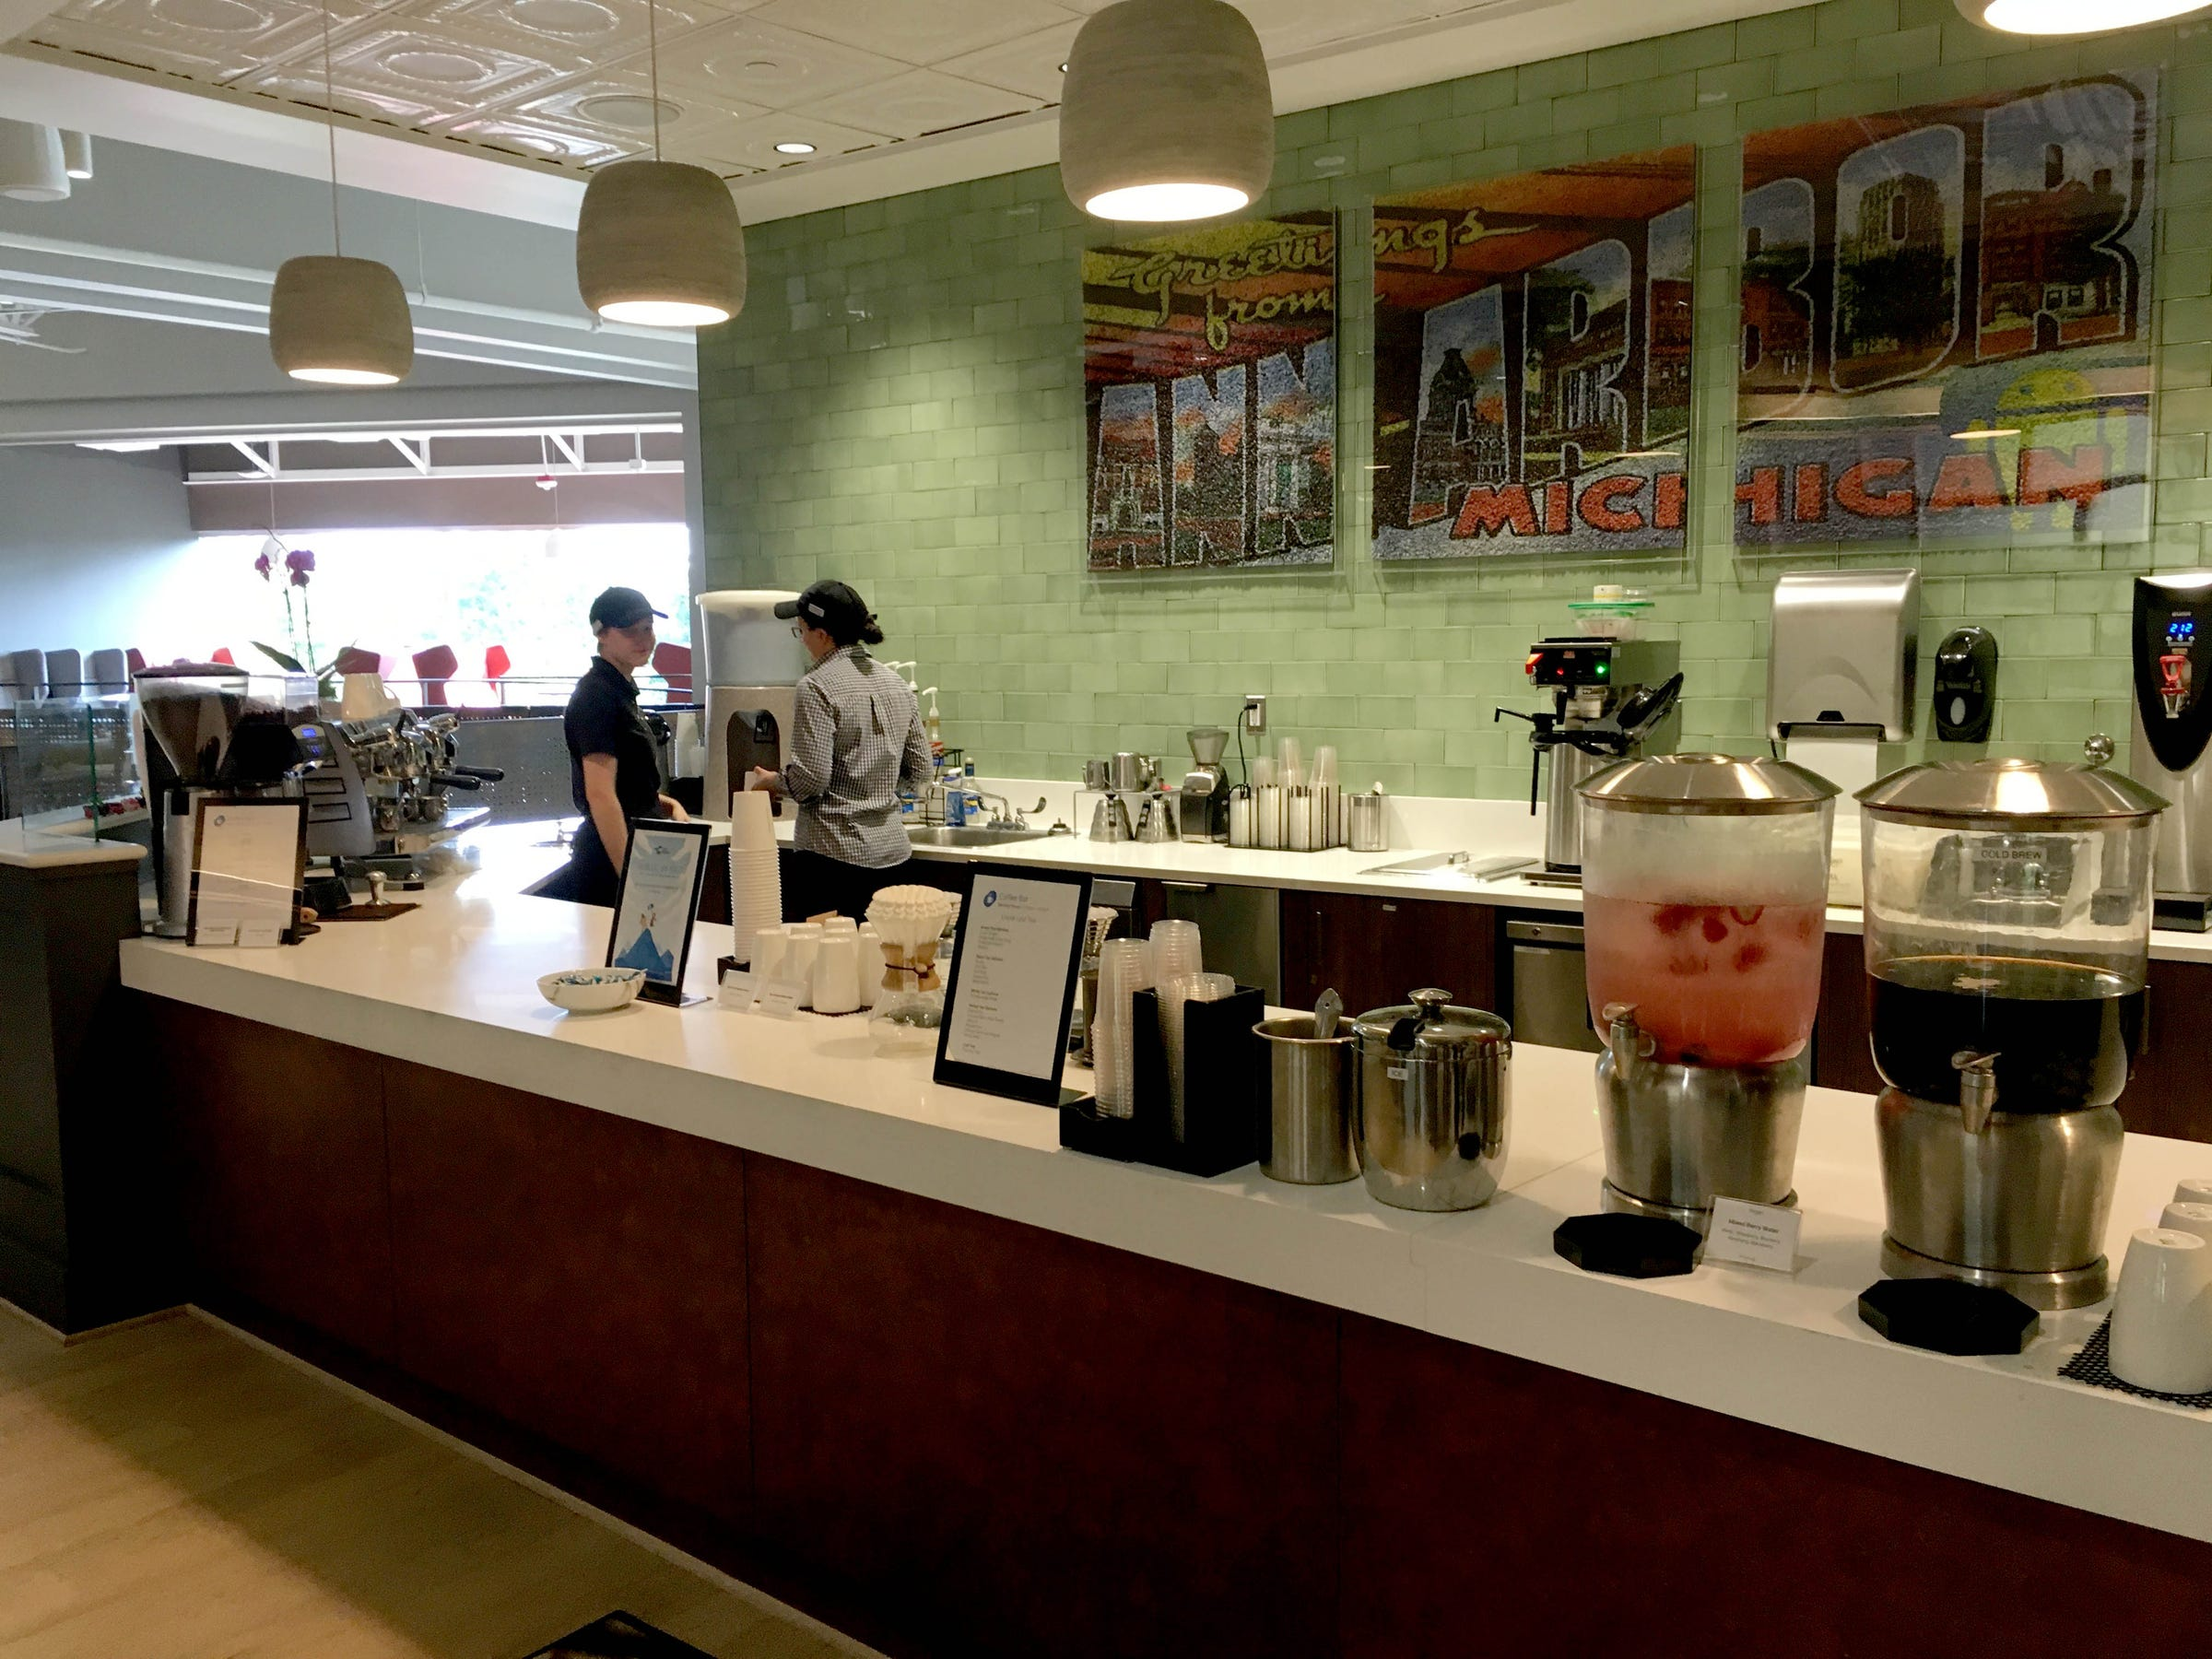 The google office Gurgaon Google Office In Ann Arbor On Sept 21 2017 Detroit Free Press Google Shows Off Amenityfilled Ann Arbor Office Where Lunch Is Free